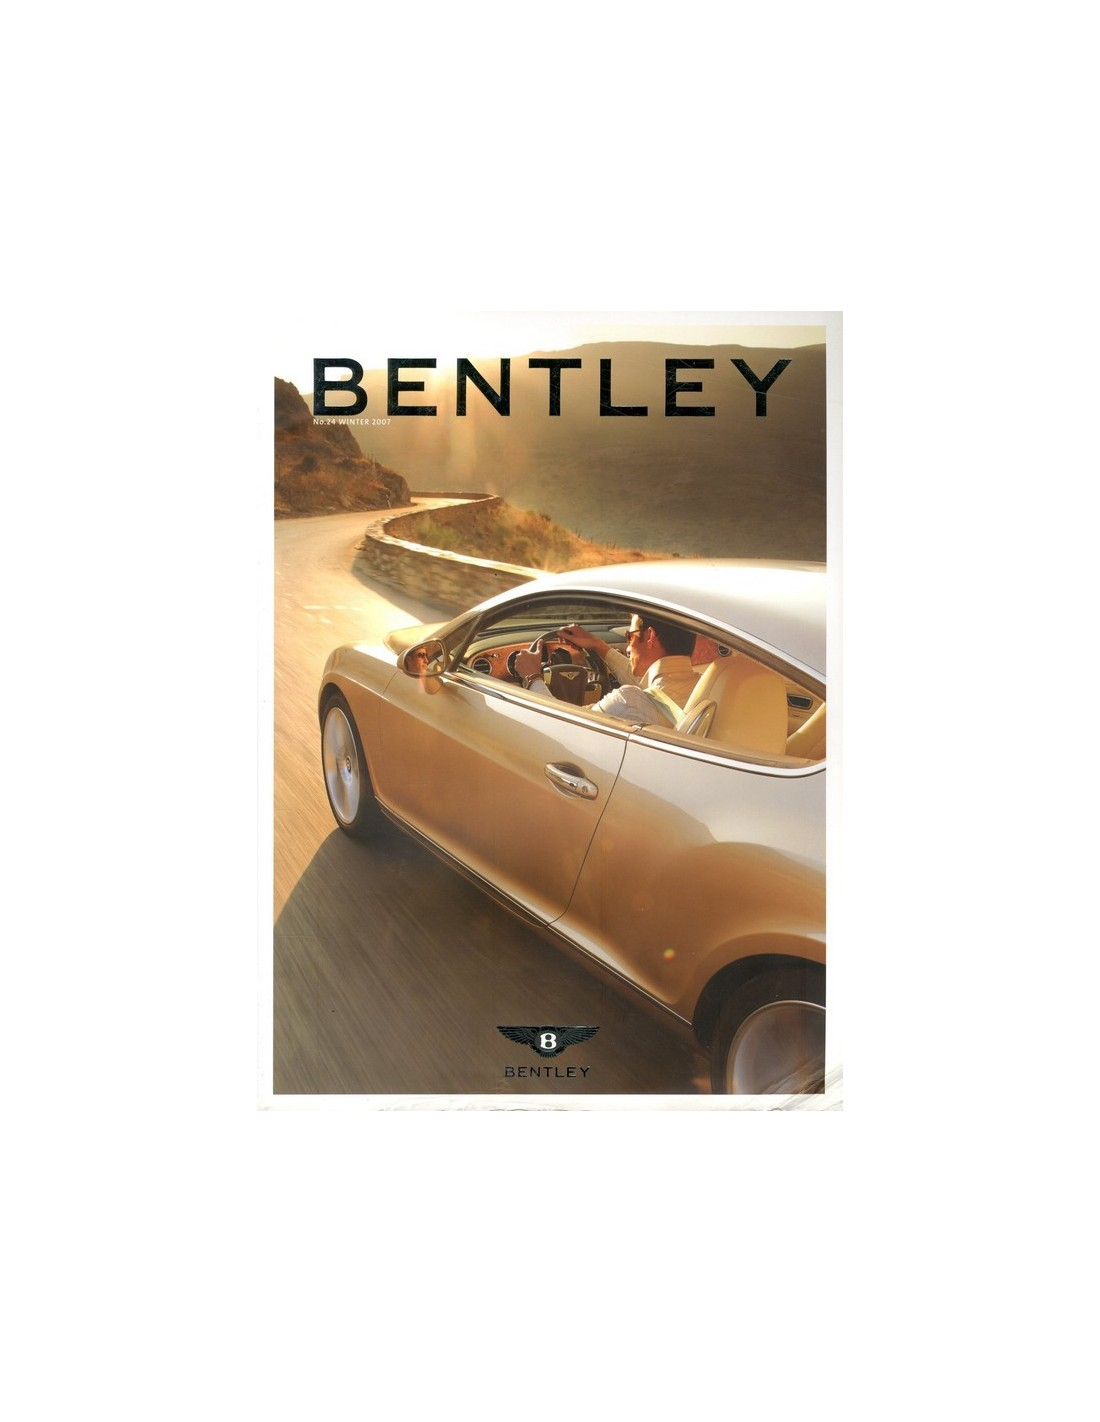 gt rear epcp news continental down o subscription magazine road european features speed convertible car bentley driving